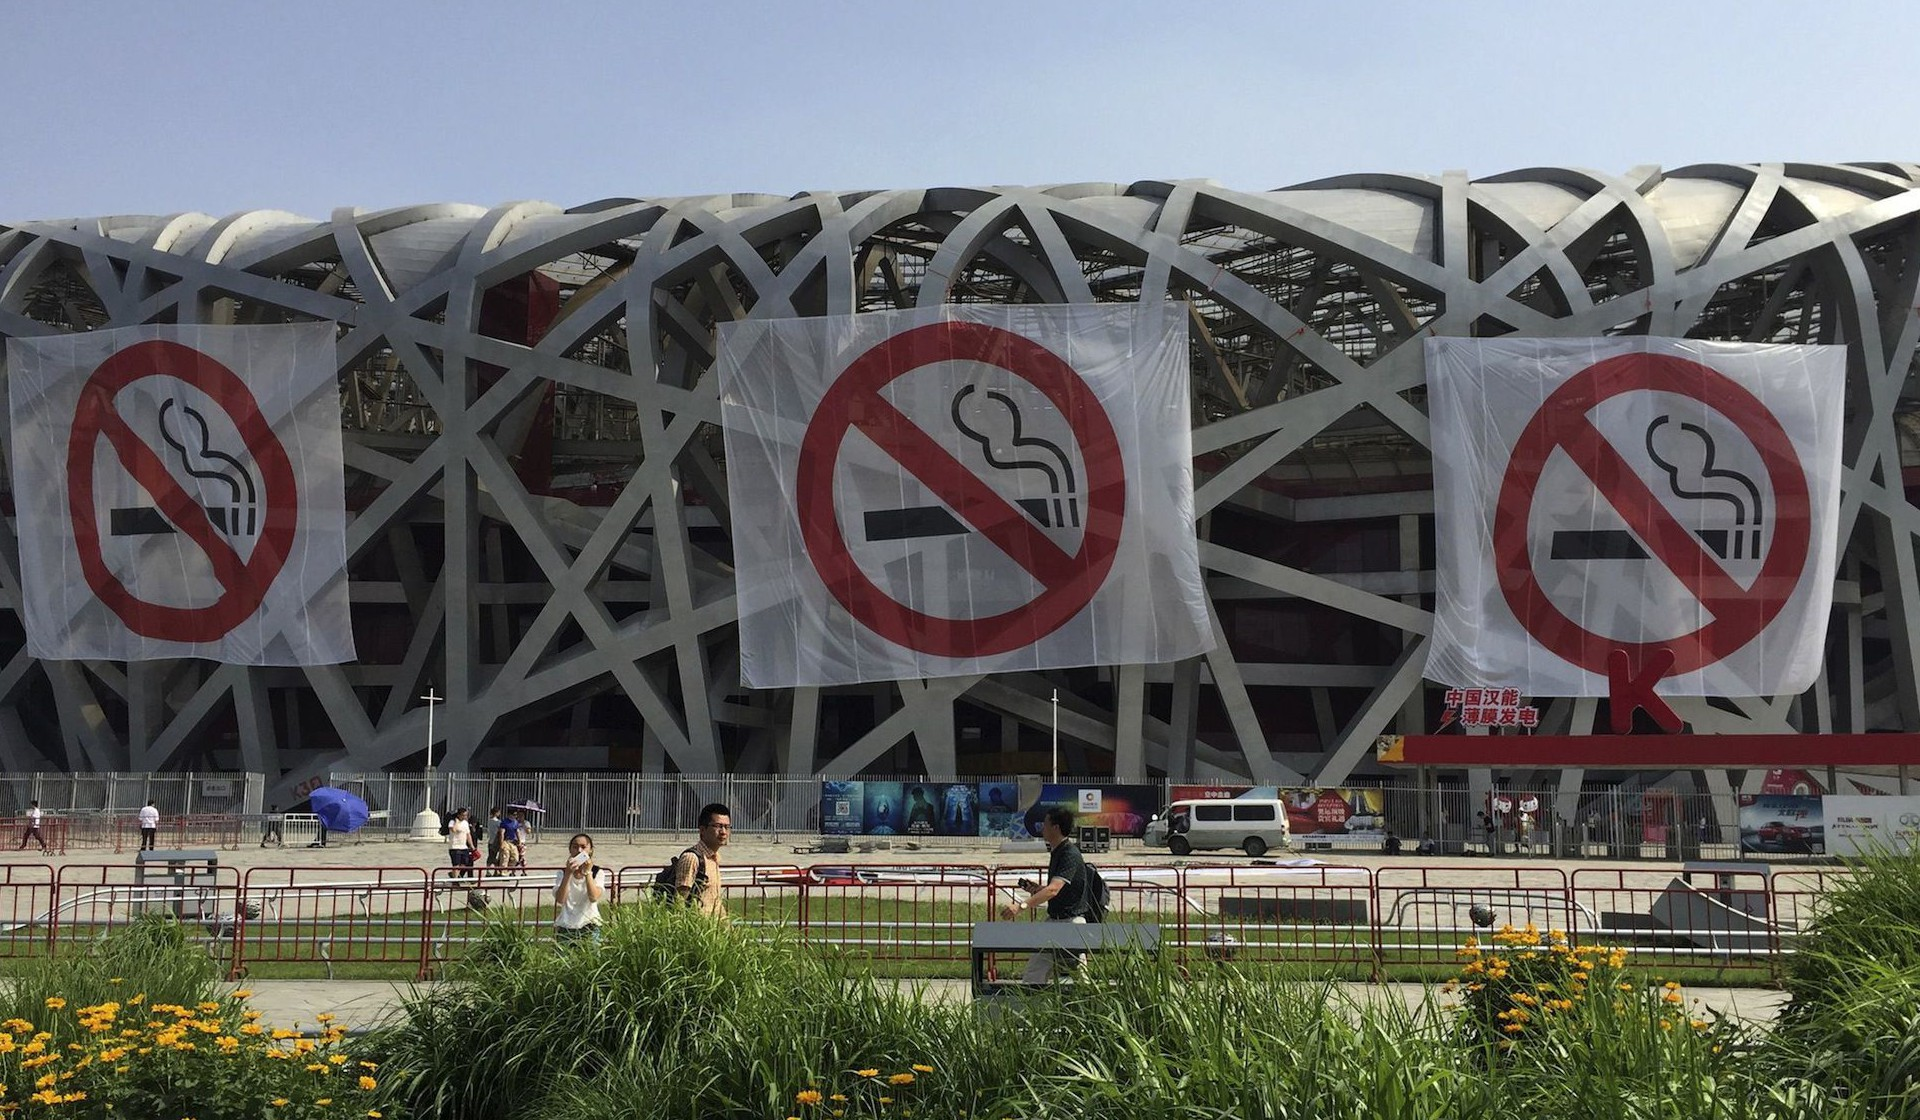 "Giant ""No-smoking"" signs are seen on the exterior of the National Stadium, also known as the Birds' Nest, as part of an anti-smoking campaign, in Beijing, China, May 30, 2015. Beijing will ban smoking in restaurants, offices and on public transport from Monday, part of unprecedented new curbs welcomed by anti-tobacco advocates, though how they will be enforced remains to be seen. Picture taken May 30, 2015. REUTERS/Stringer CHINA OUT. NO COMMERCIAL OR EDITORIAL SALES IN CHINA - RTR4Y6BN"